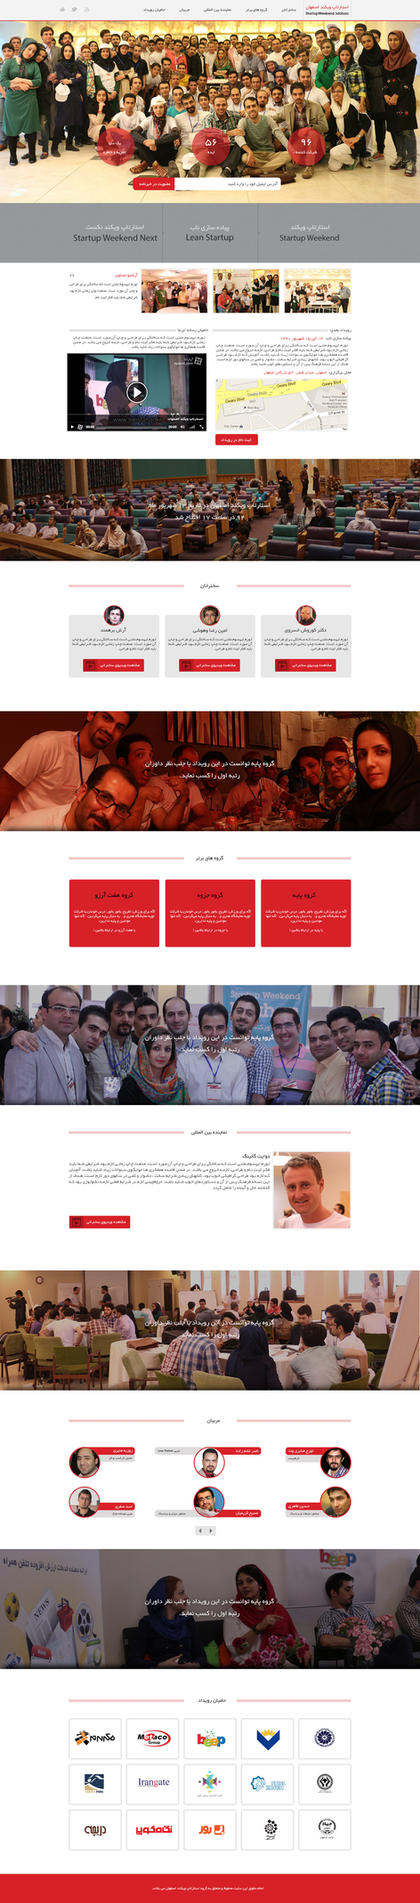 Startup Weekend Isfahan by ajoudanian